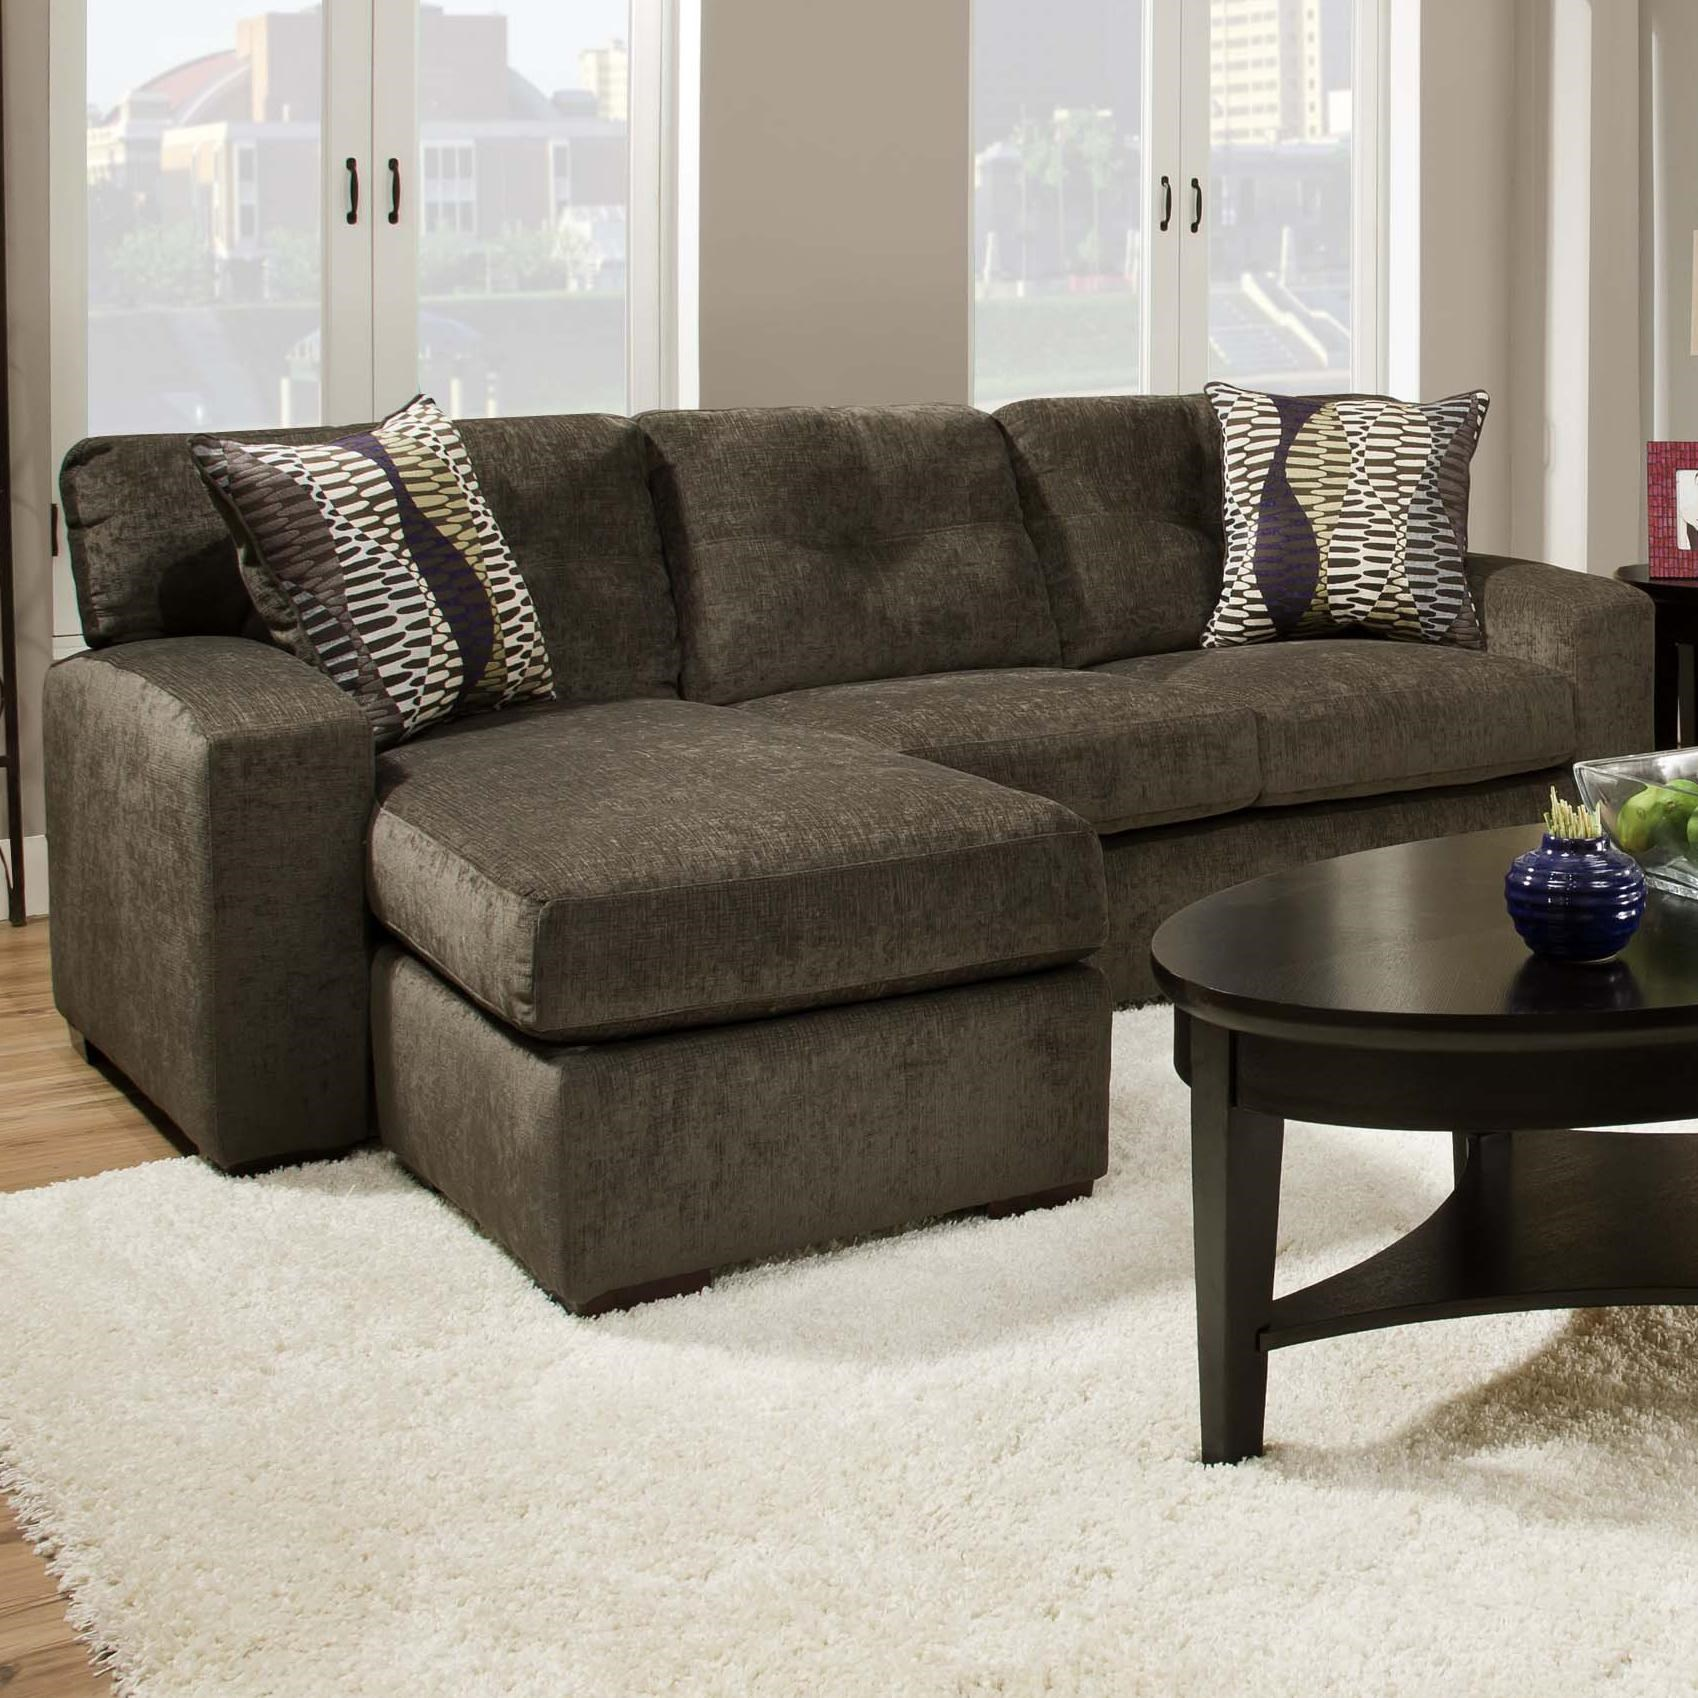 Sectional Sofas Dallas Texas | Centerfieldbar.com